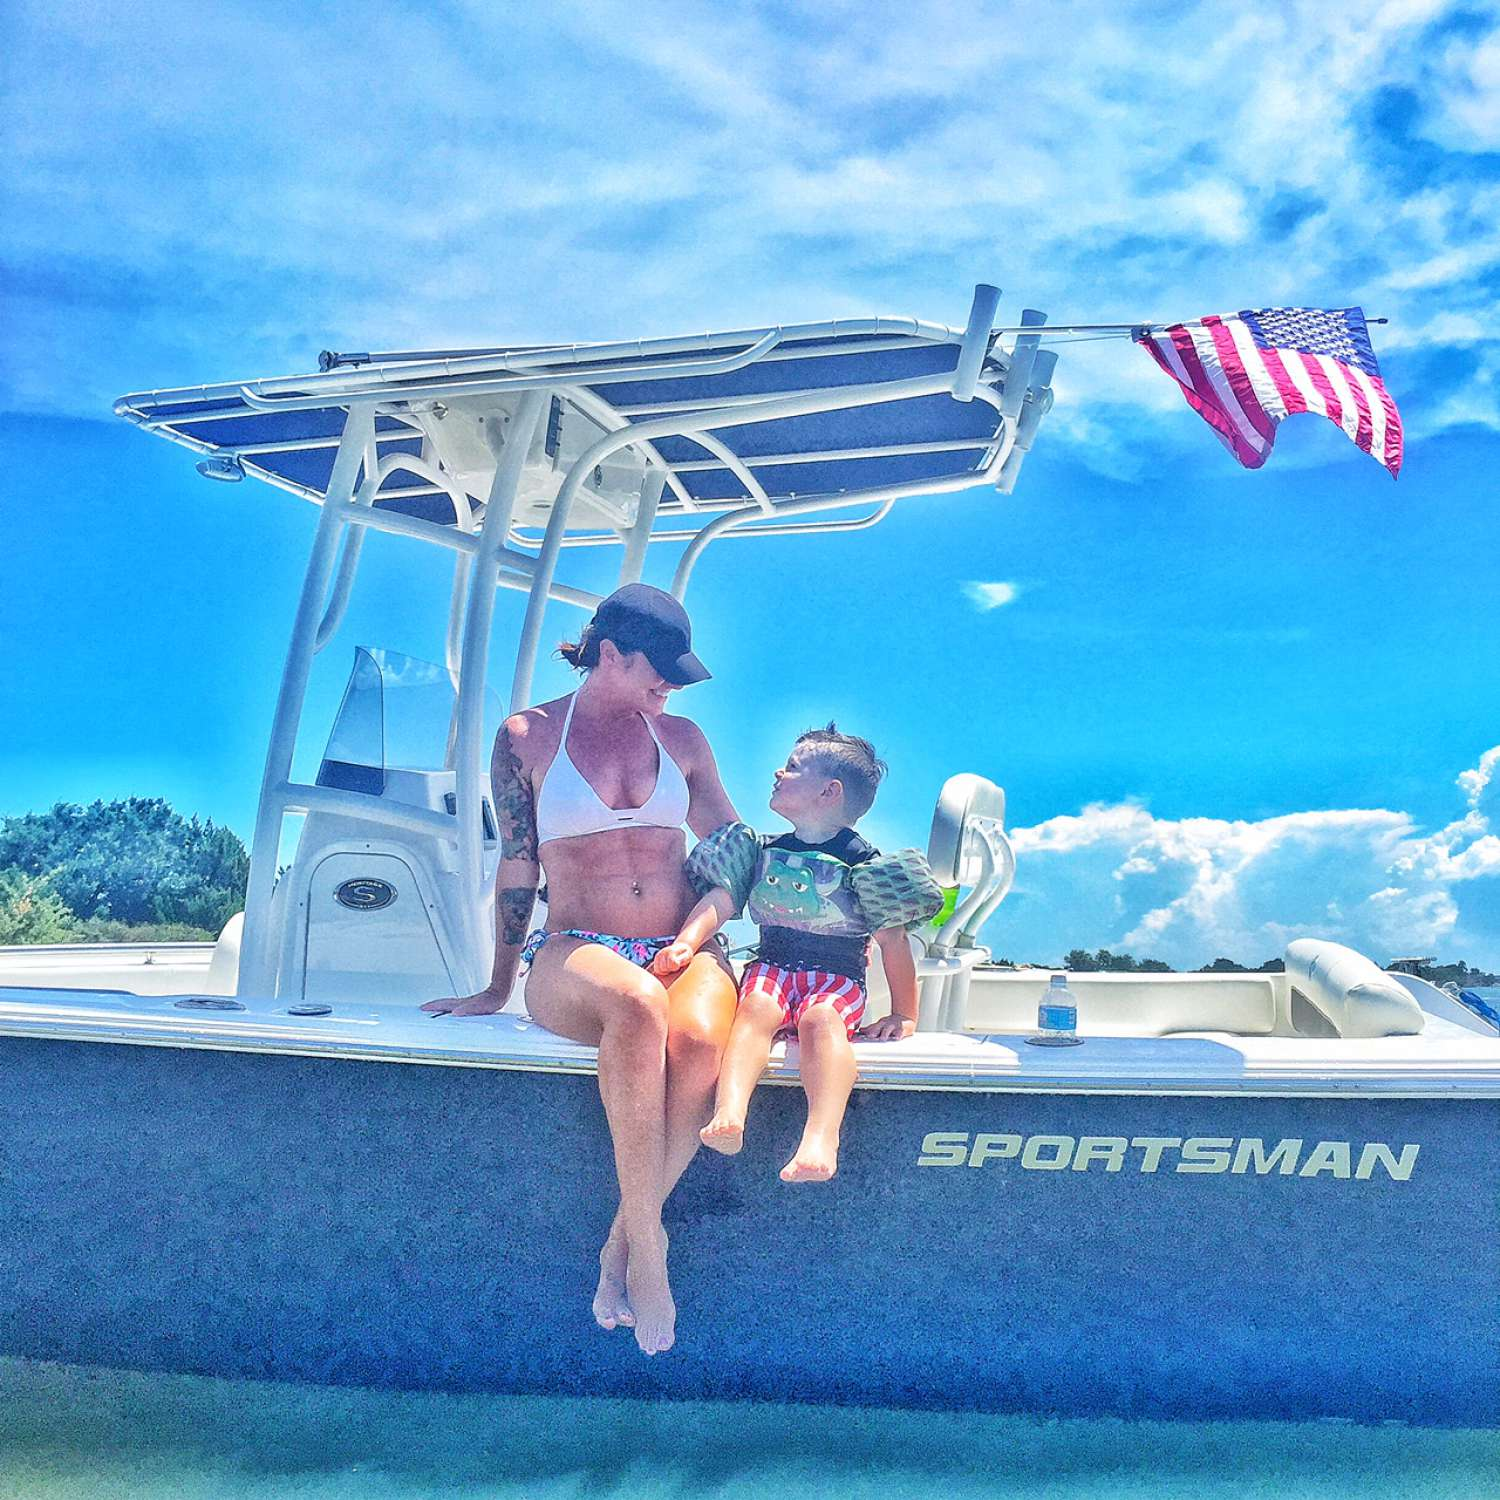 Title: Mama's Boy - On board their Sportsman Heritage 211 Center Console - Location: Jacksonville, Florida. Participating in the Photo Contest #SportsmanAugust2016